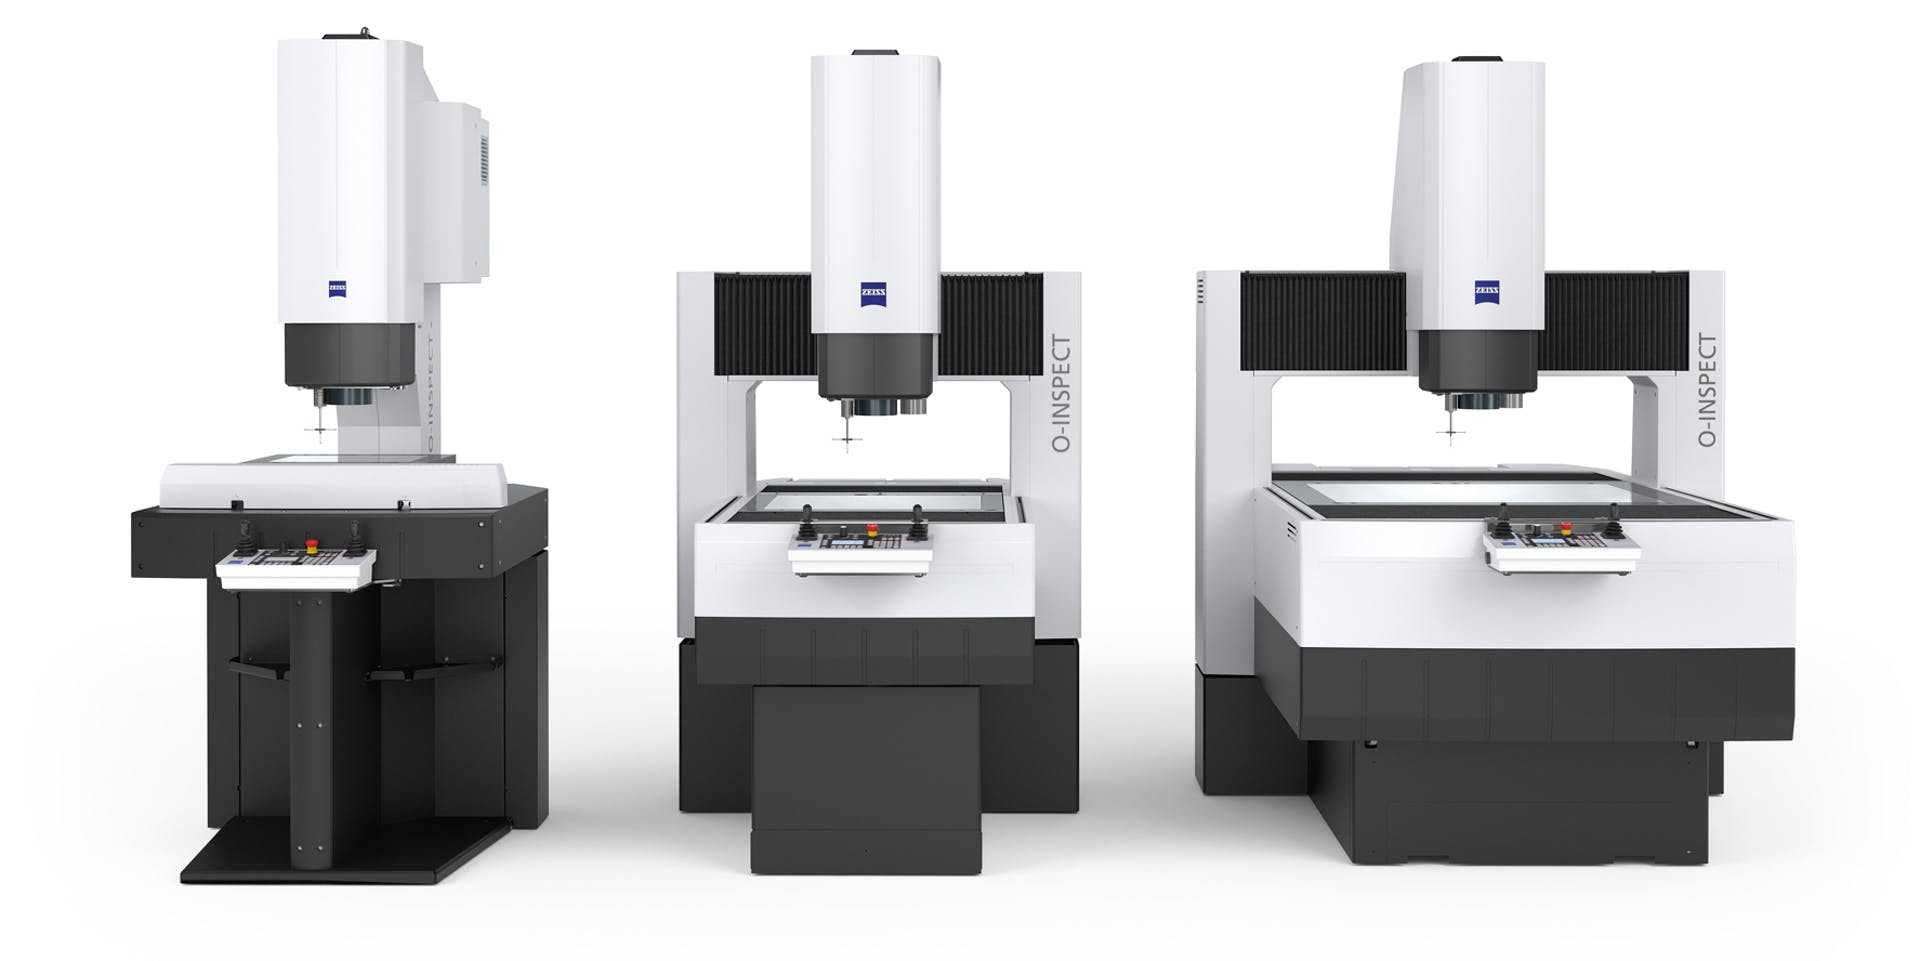 The multi-sensor family ZEISS O-INSPECT delivers reliable 3D accuracy compliant with ISO standards at a temperature range of 18-30°C